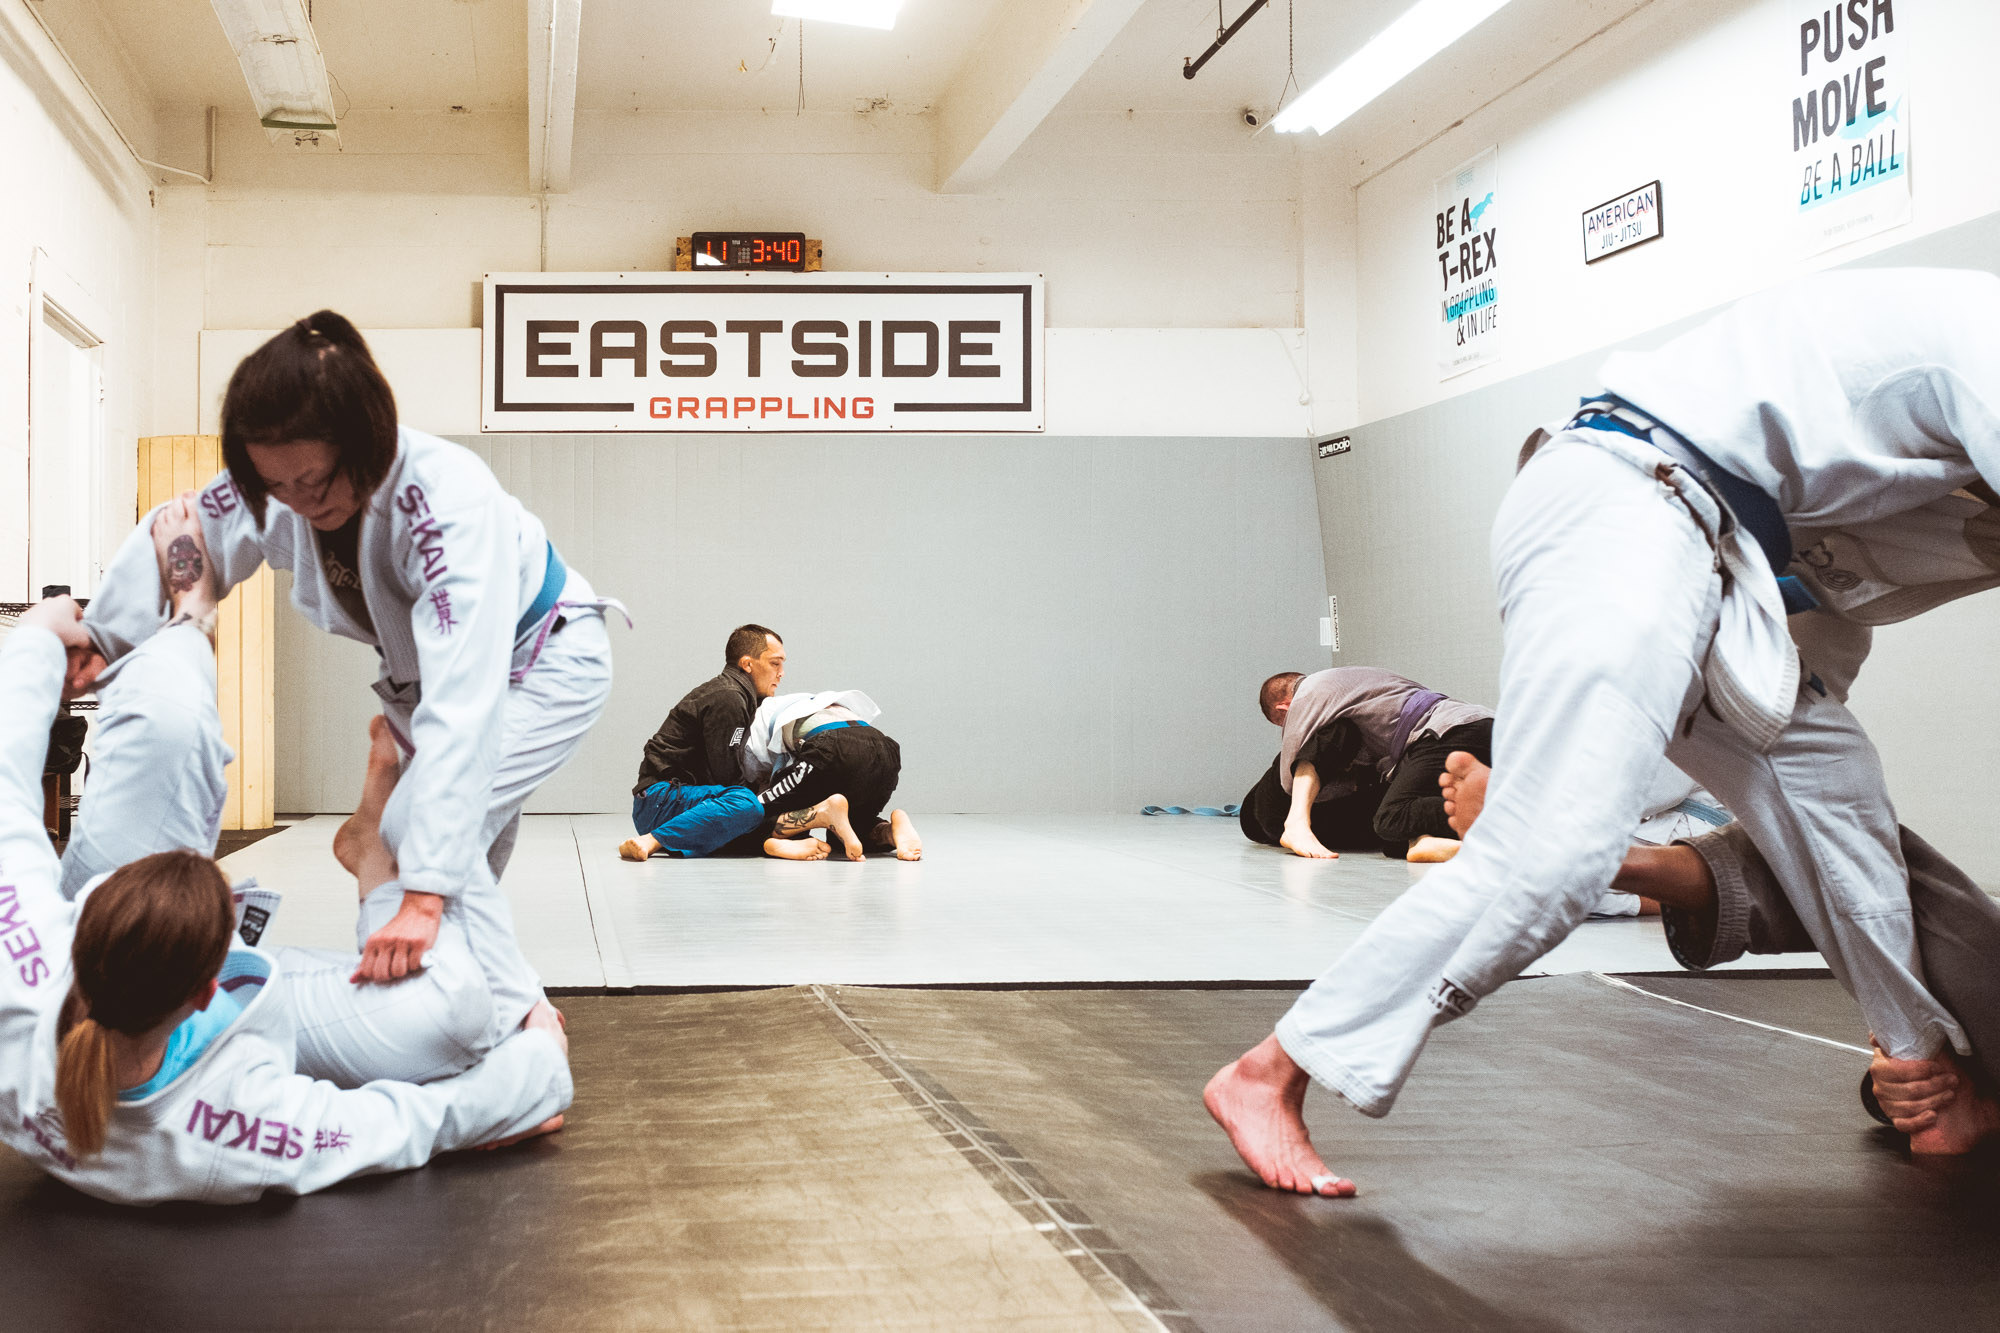 Eastside-grappling-Portland-Oregon